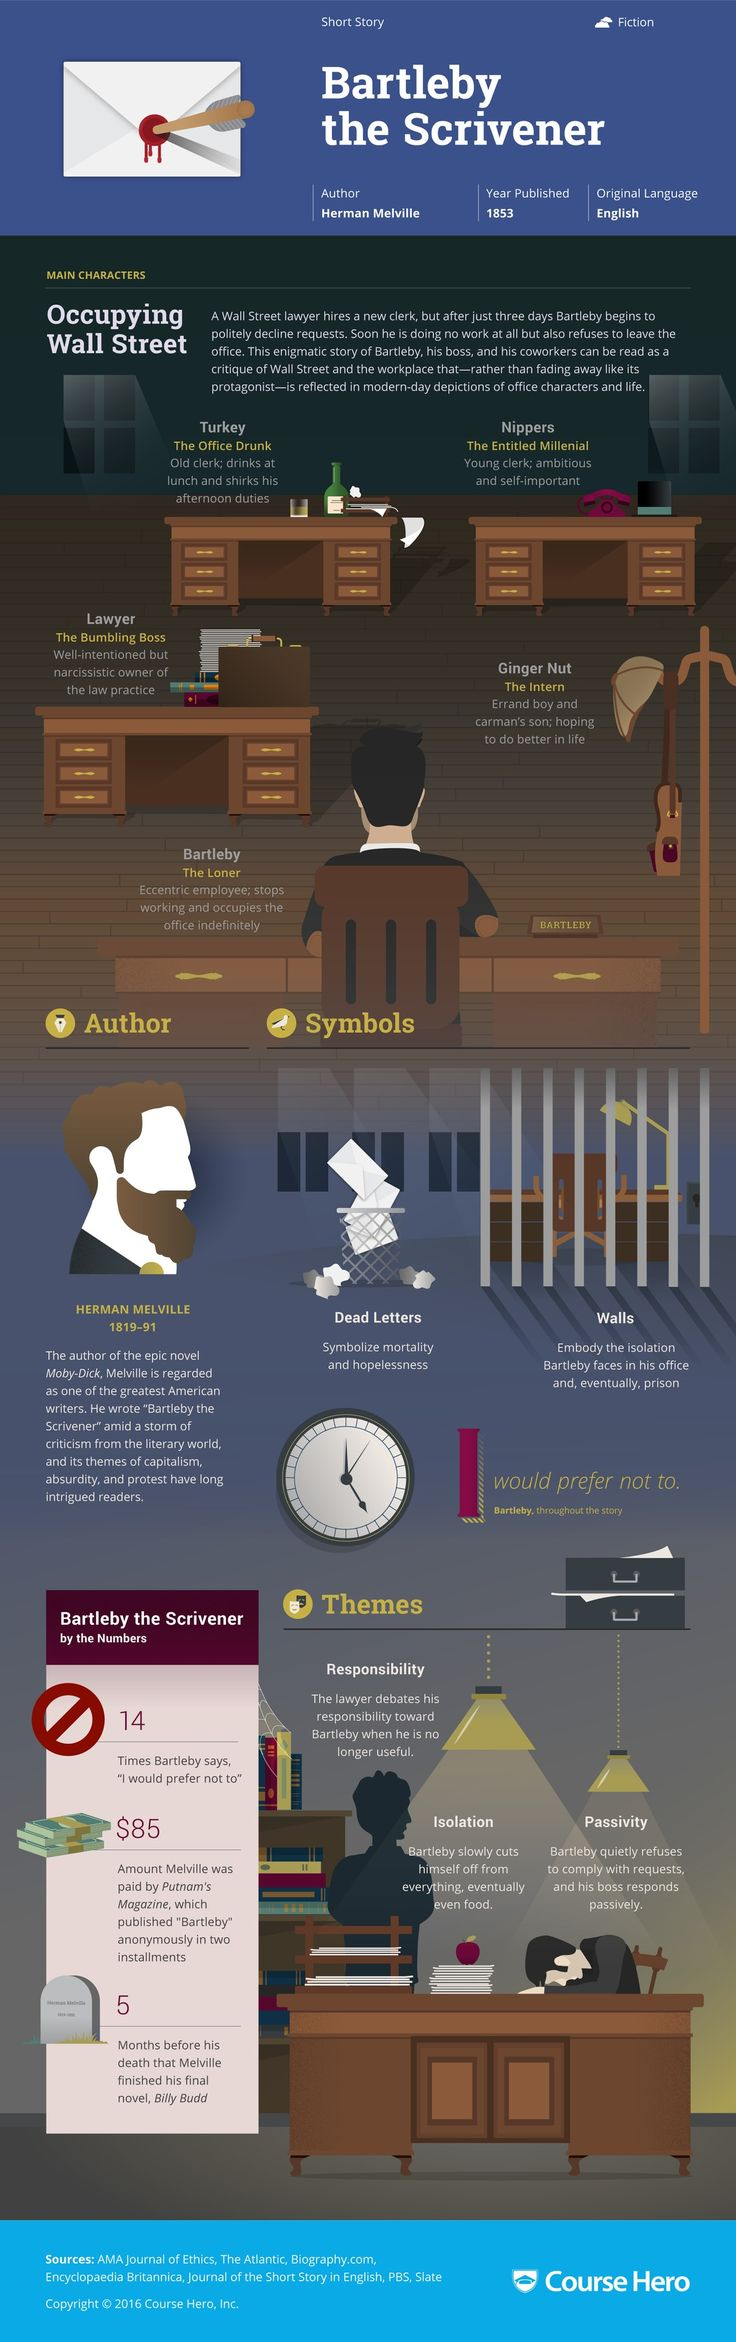 Bartleby the Scrivener Infographic | Course Hero